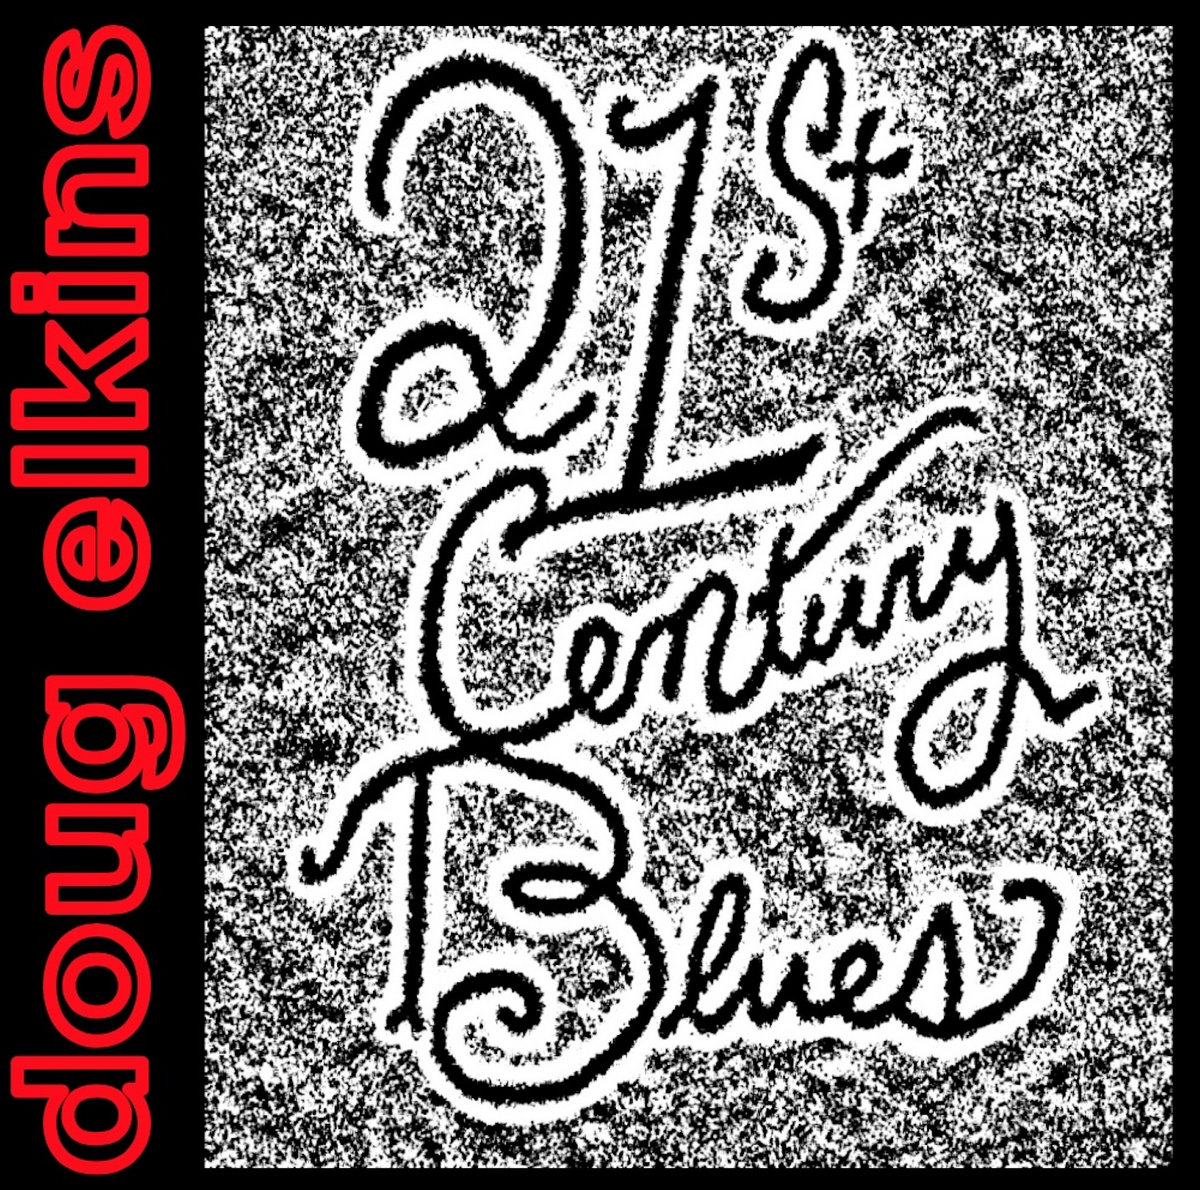 21st Century Blues by Doug Elkins